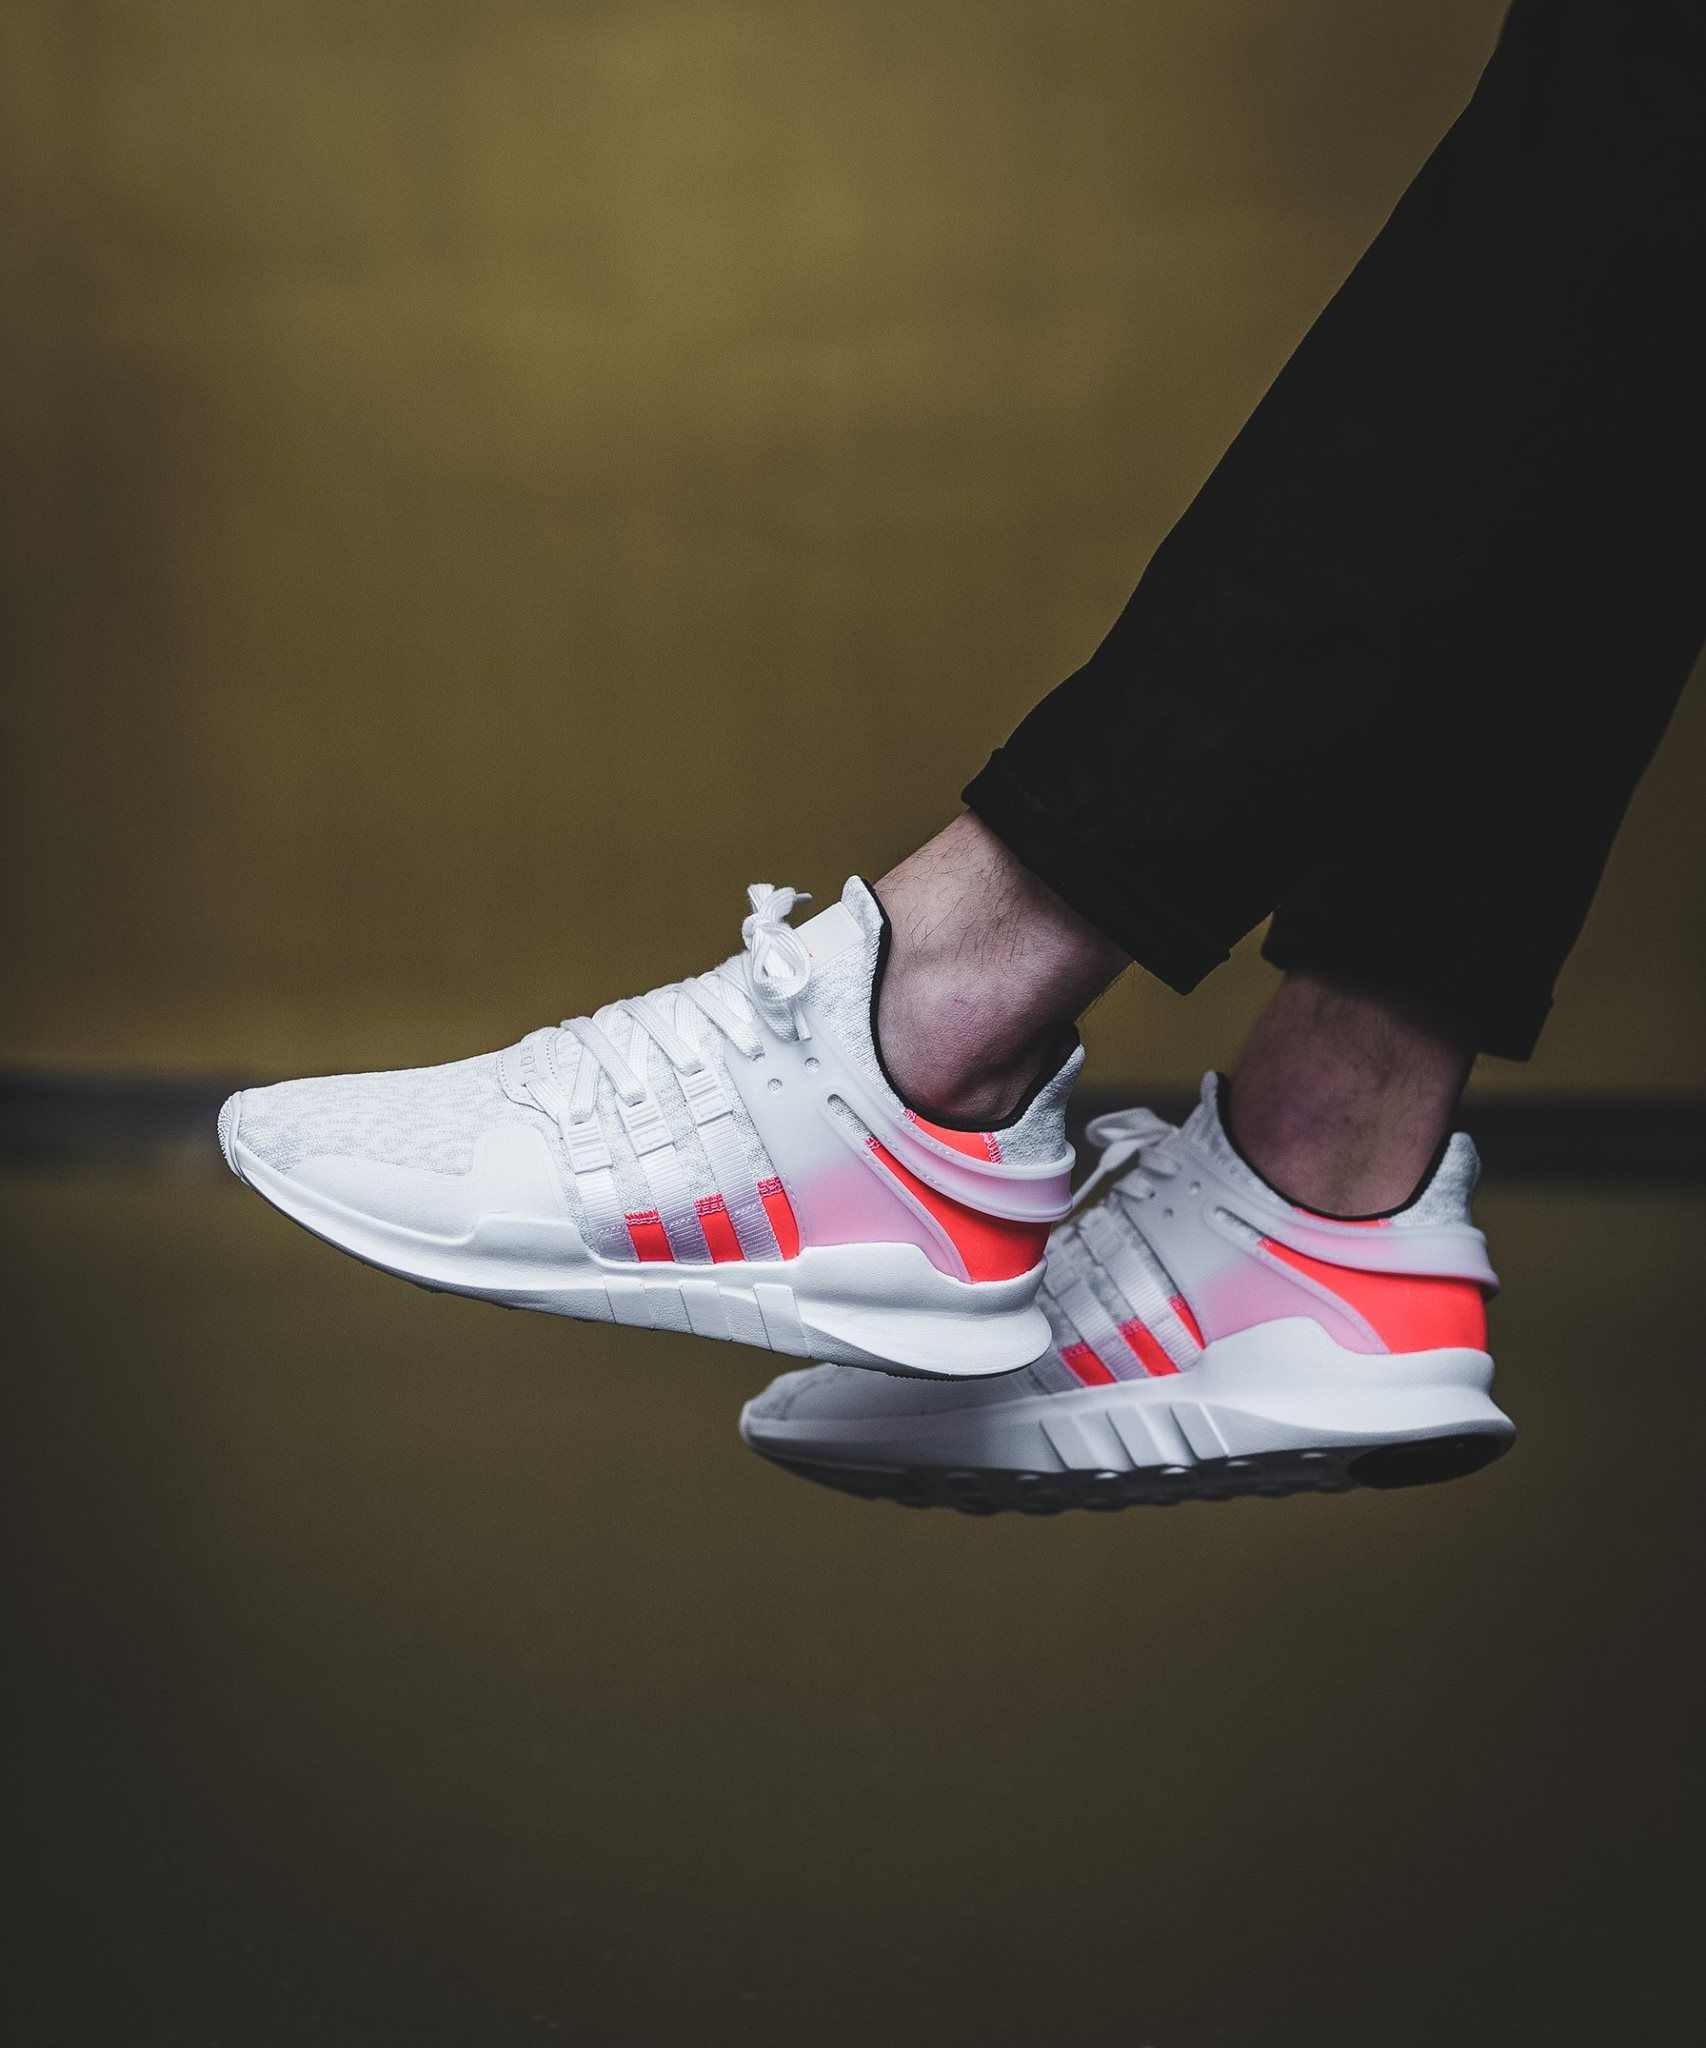 huge discount 98a9f 96844 adidas Eqt Support ADV  Crystal White   Turbo  (BB2791) - KICKS-DAILY.COM